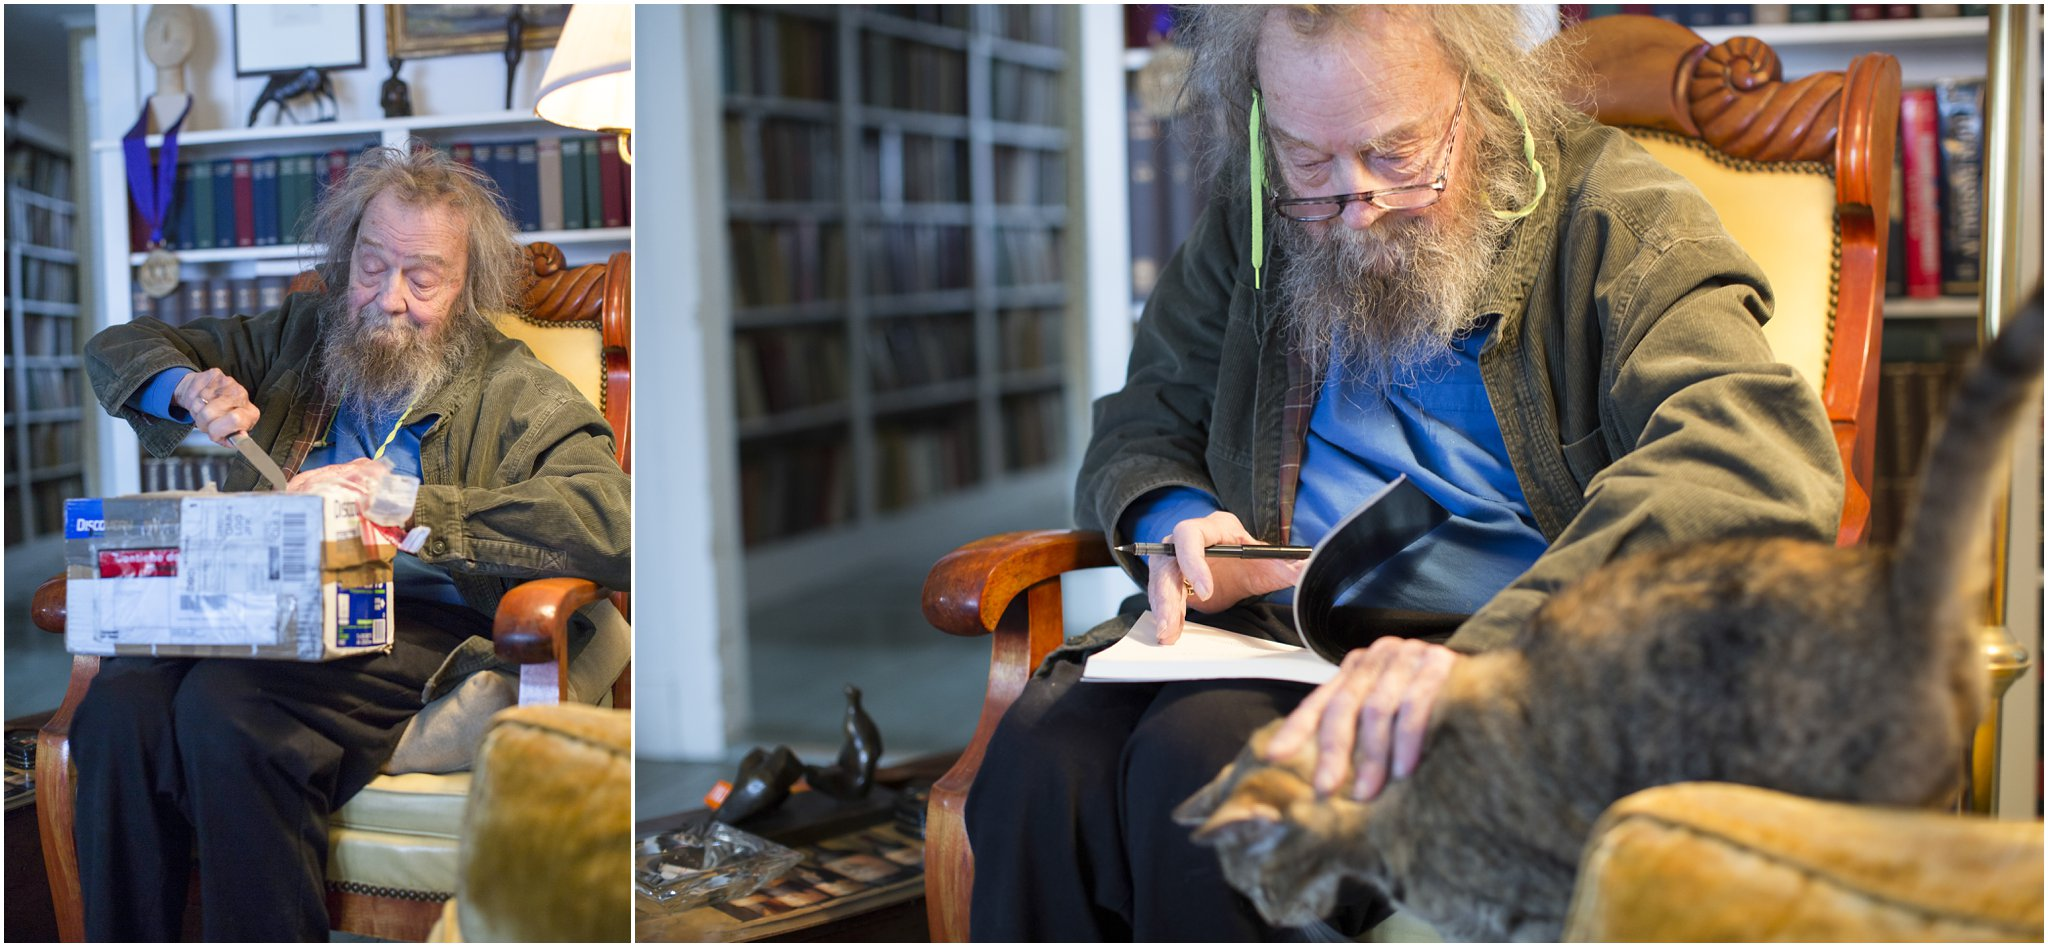 Donald Hall Fedex and Cat